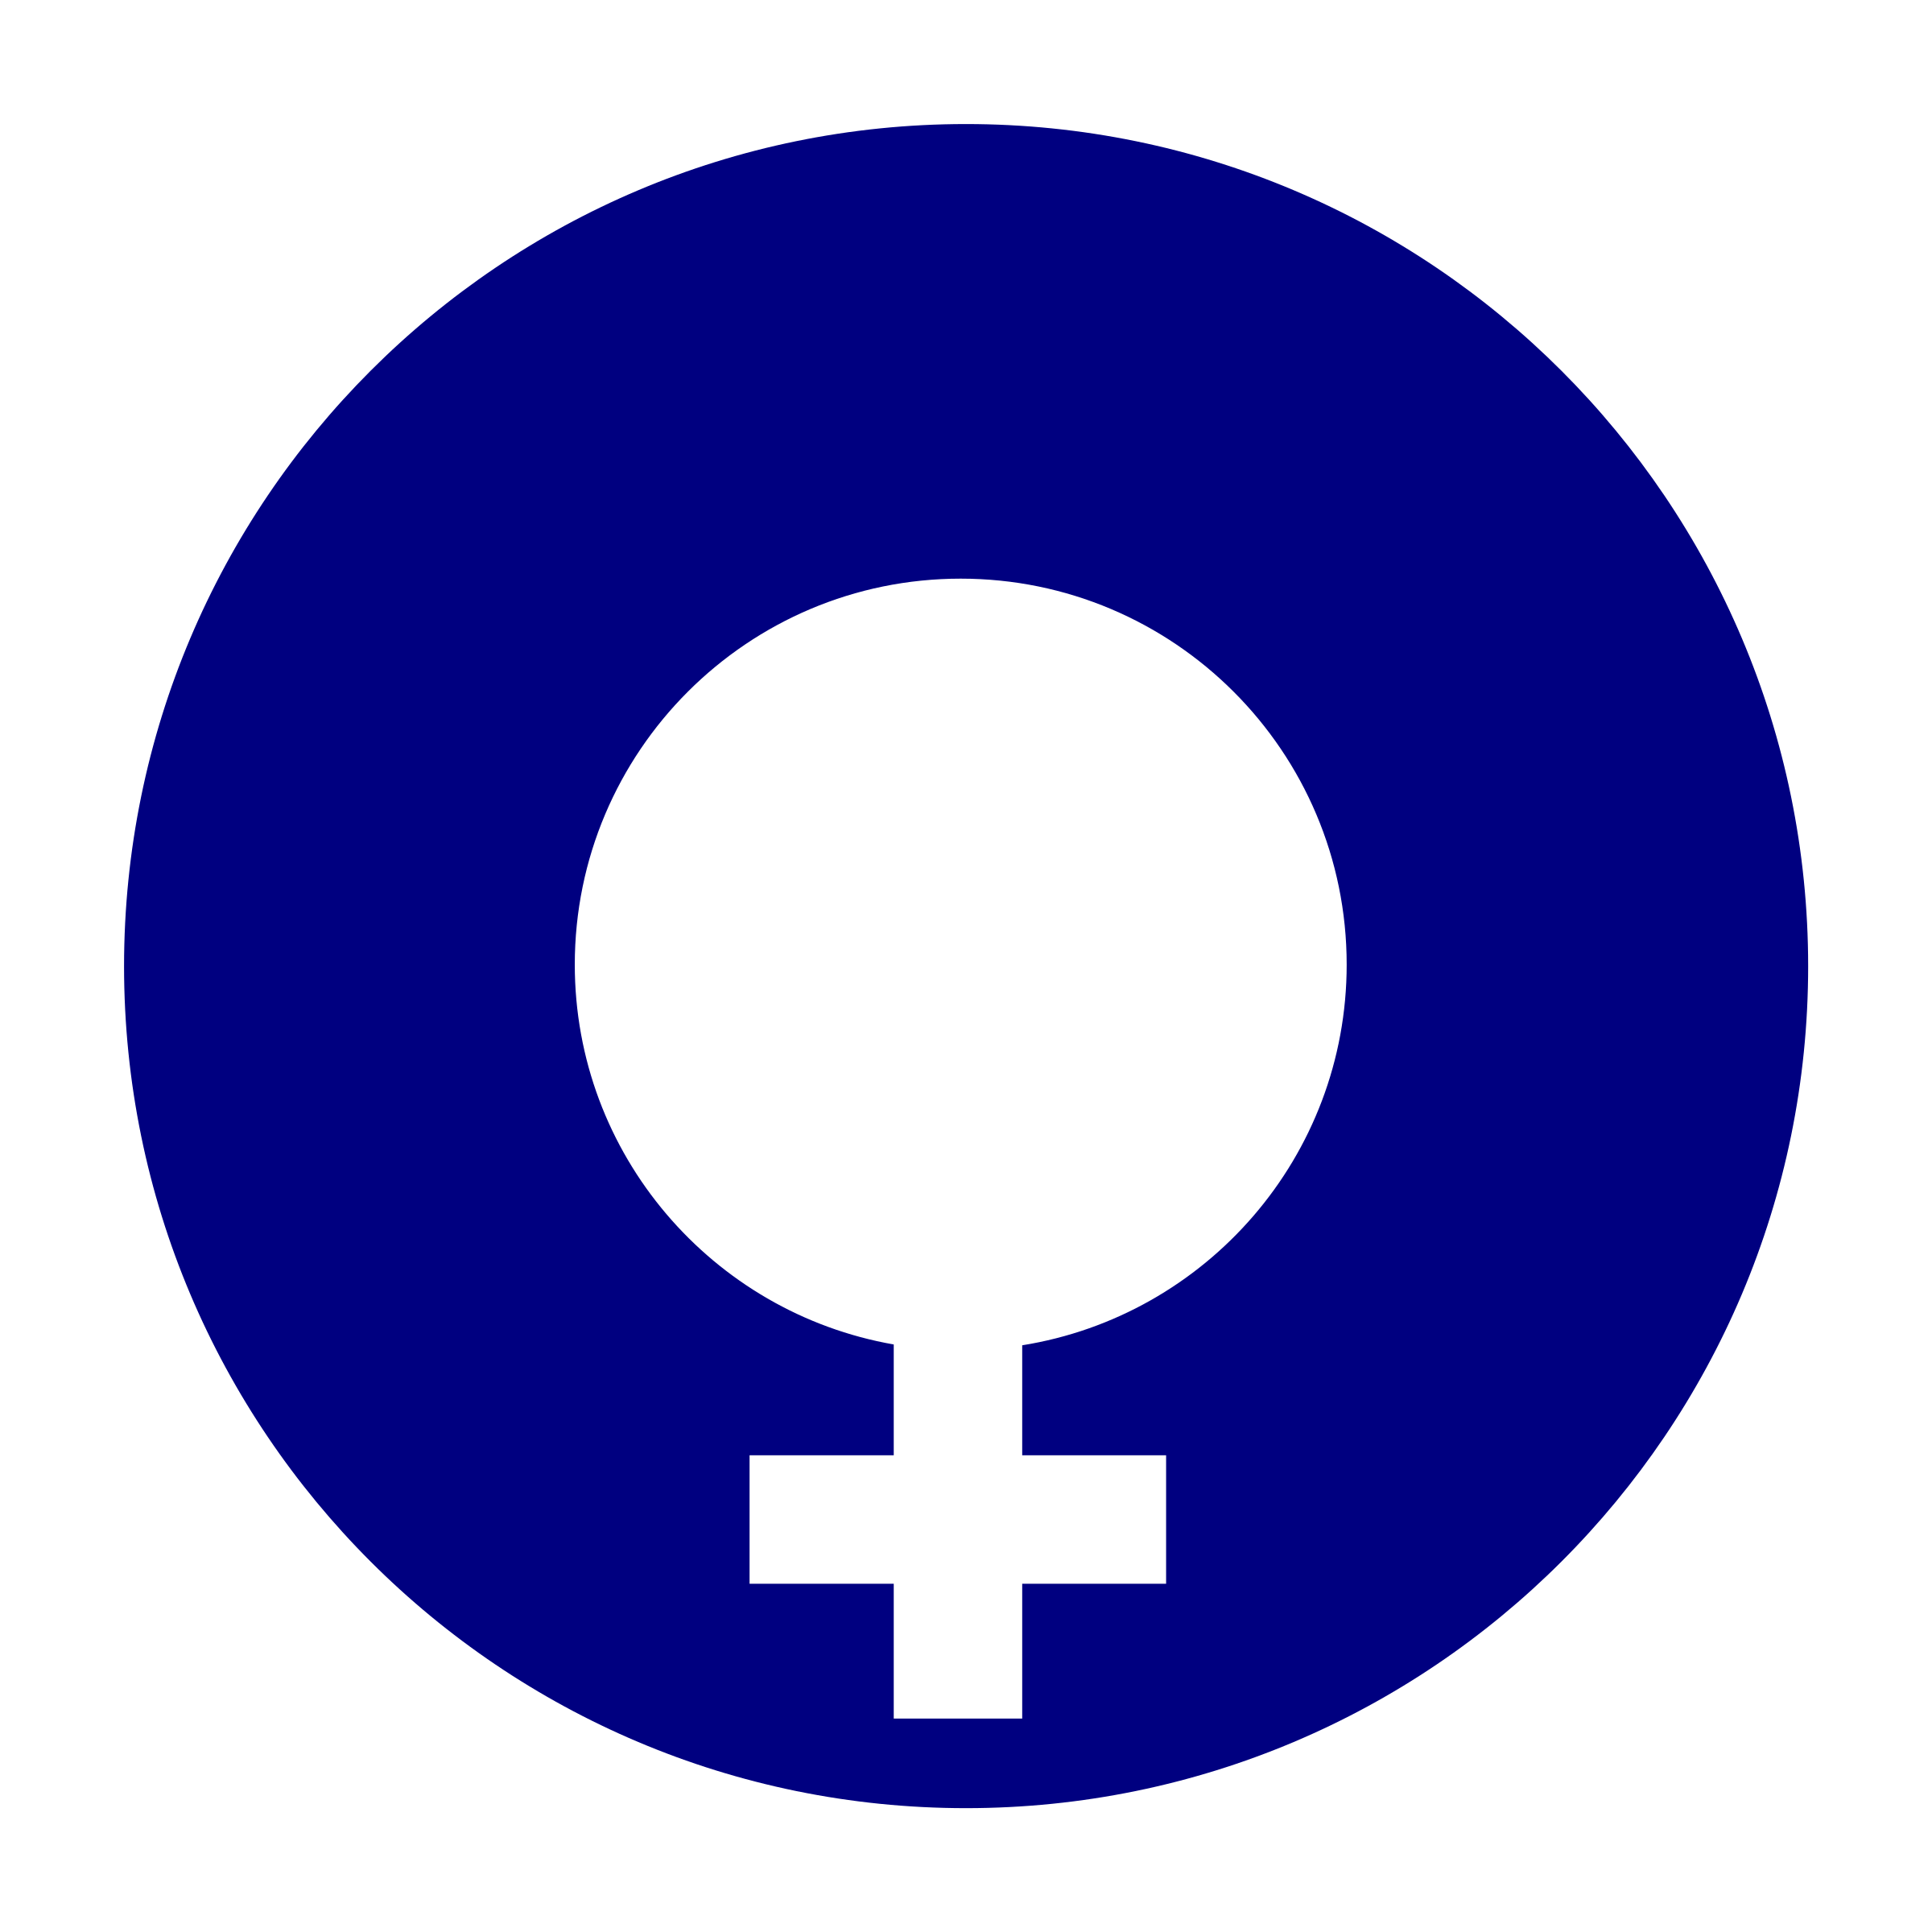 female gender symbol filled in a circle by worker